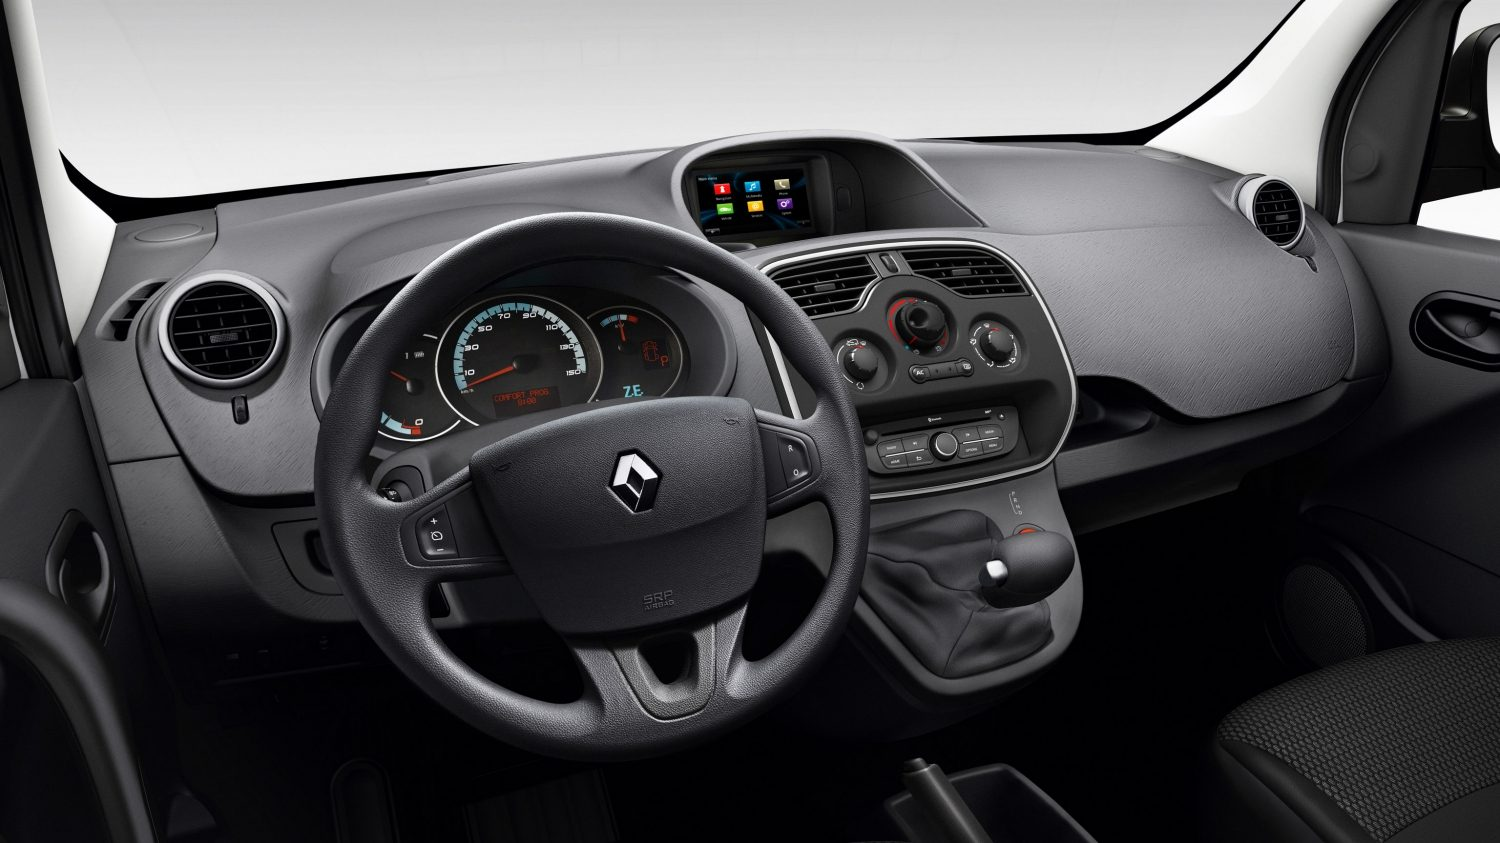 nuovo-kangoo-design-interno-02